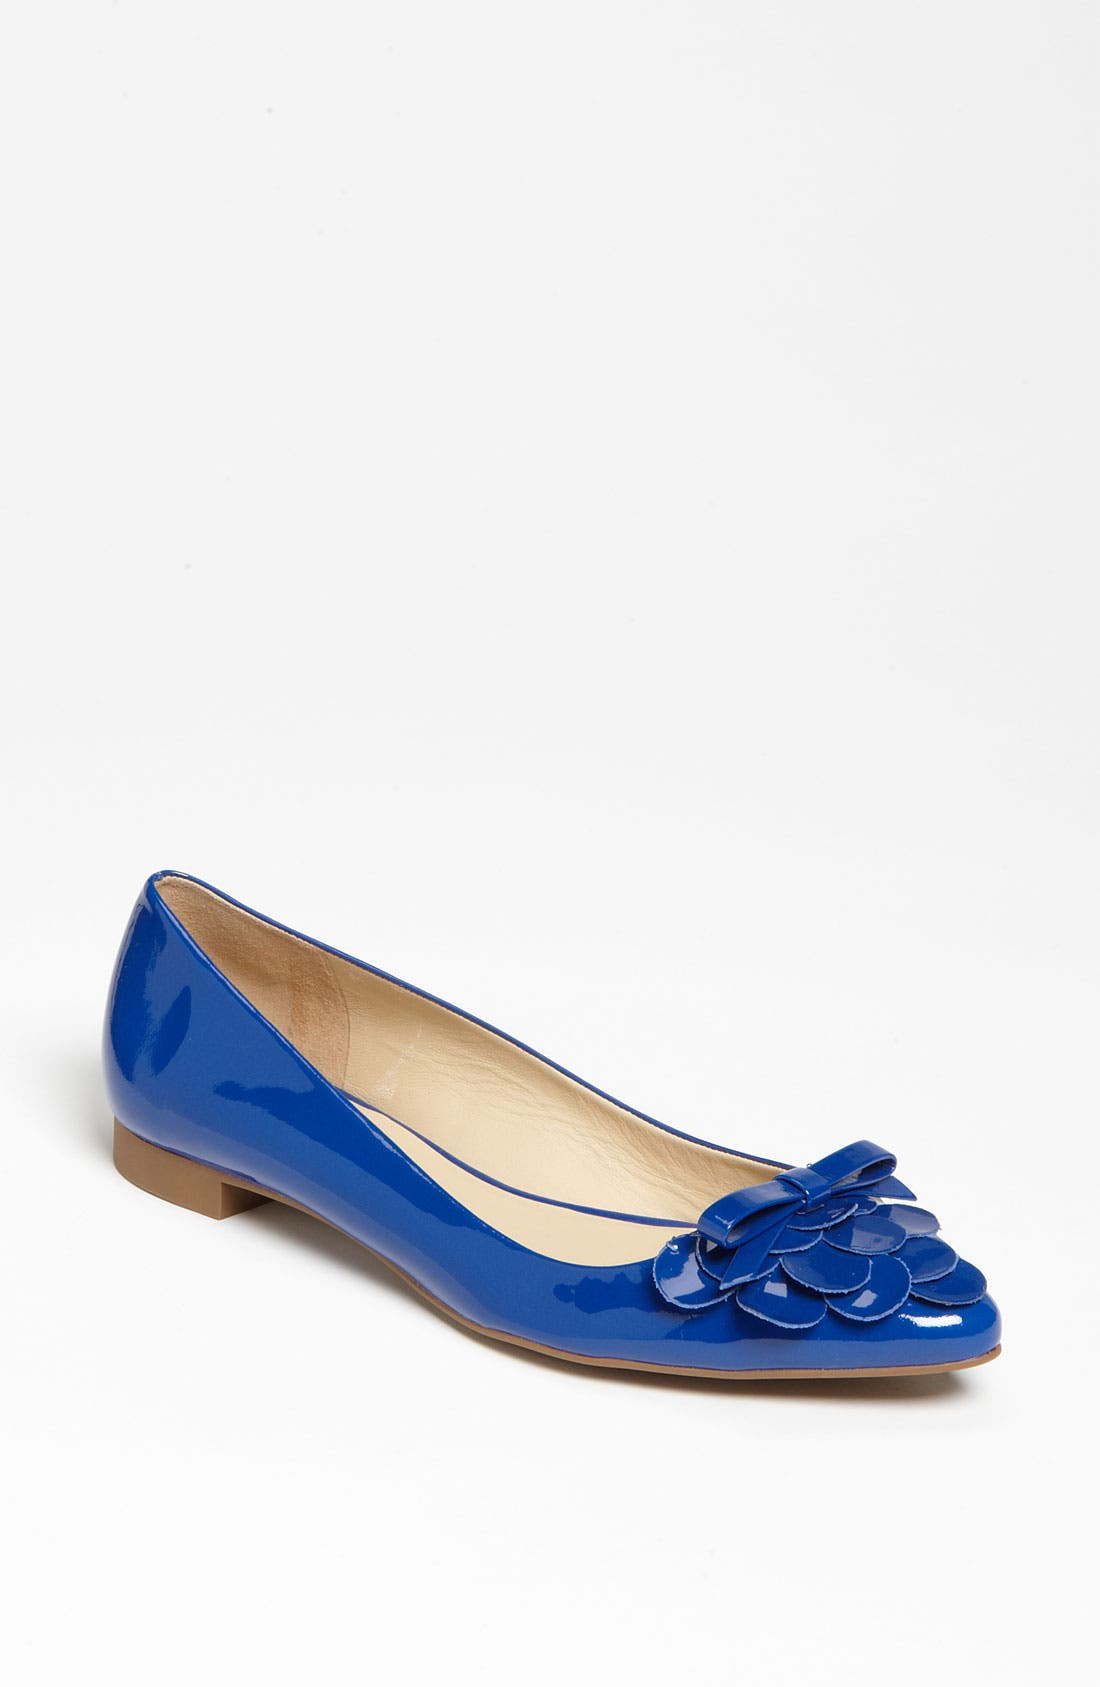 Alternate Image 1 Selected - kate spade new york 'erica' flat